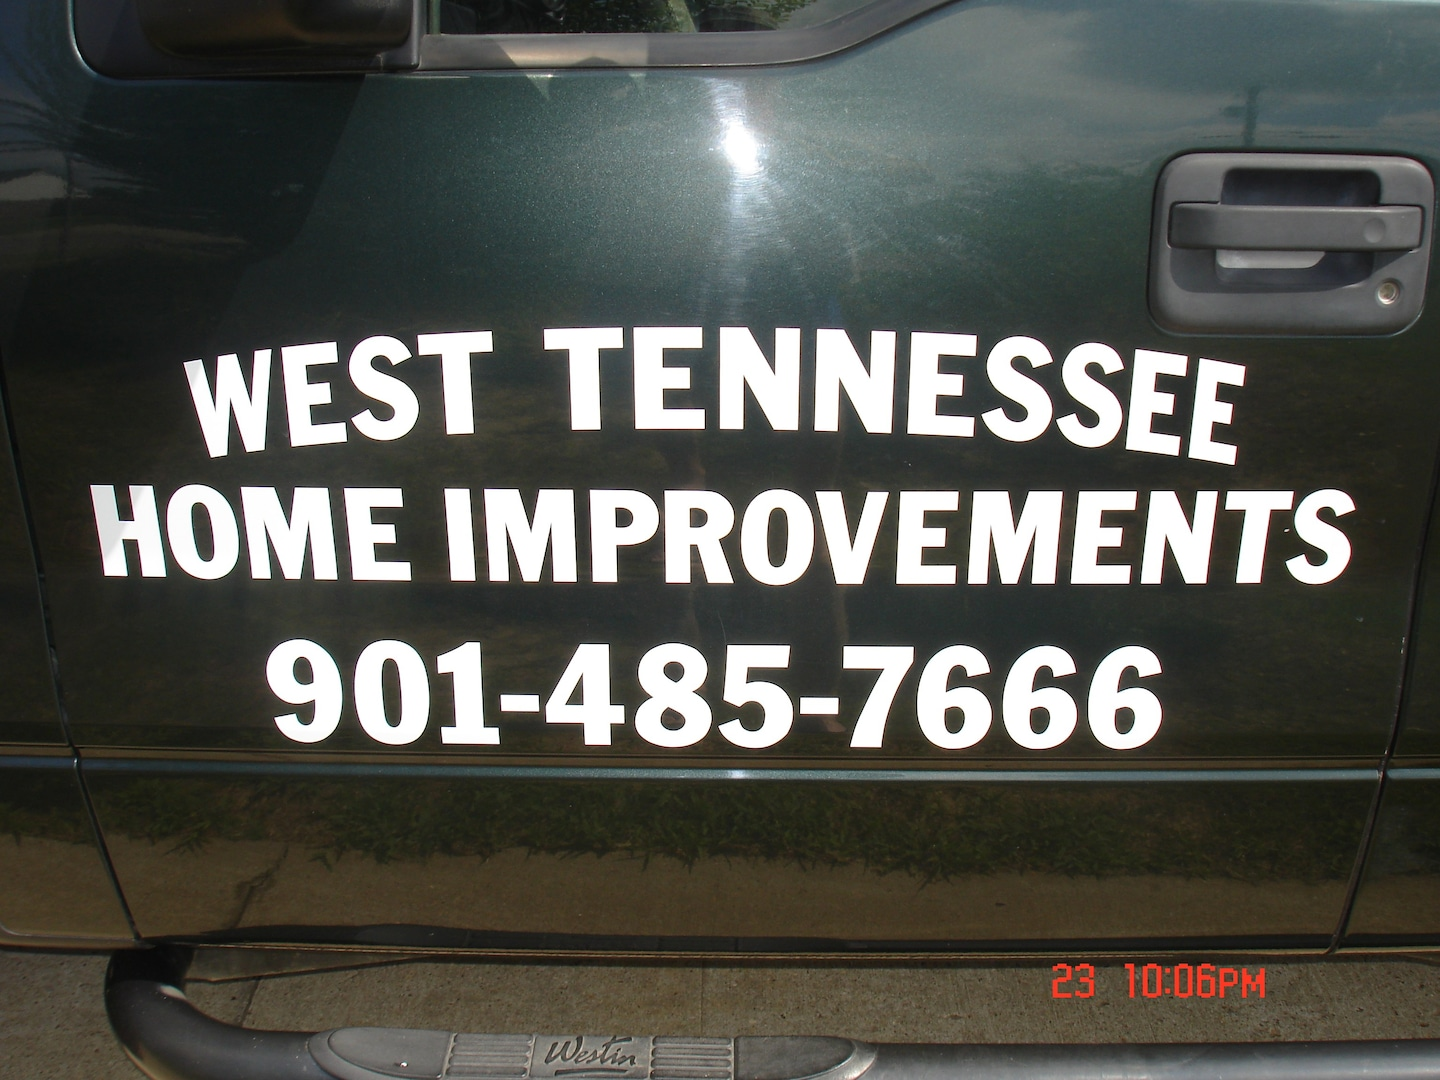 West Tennessee Home Improvements